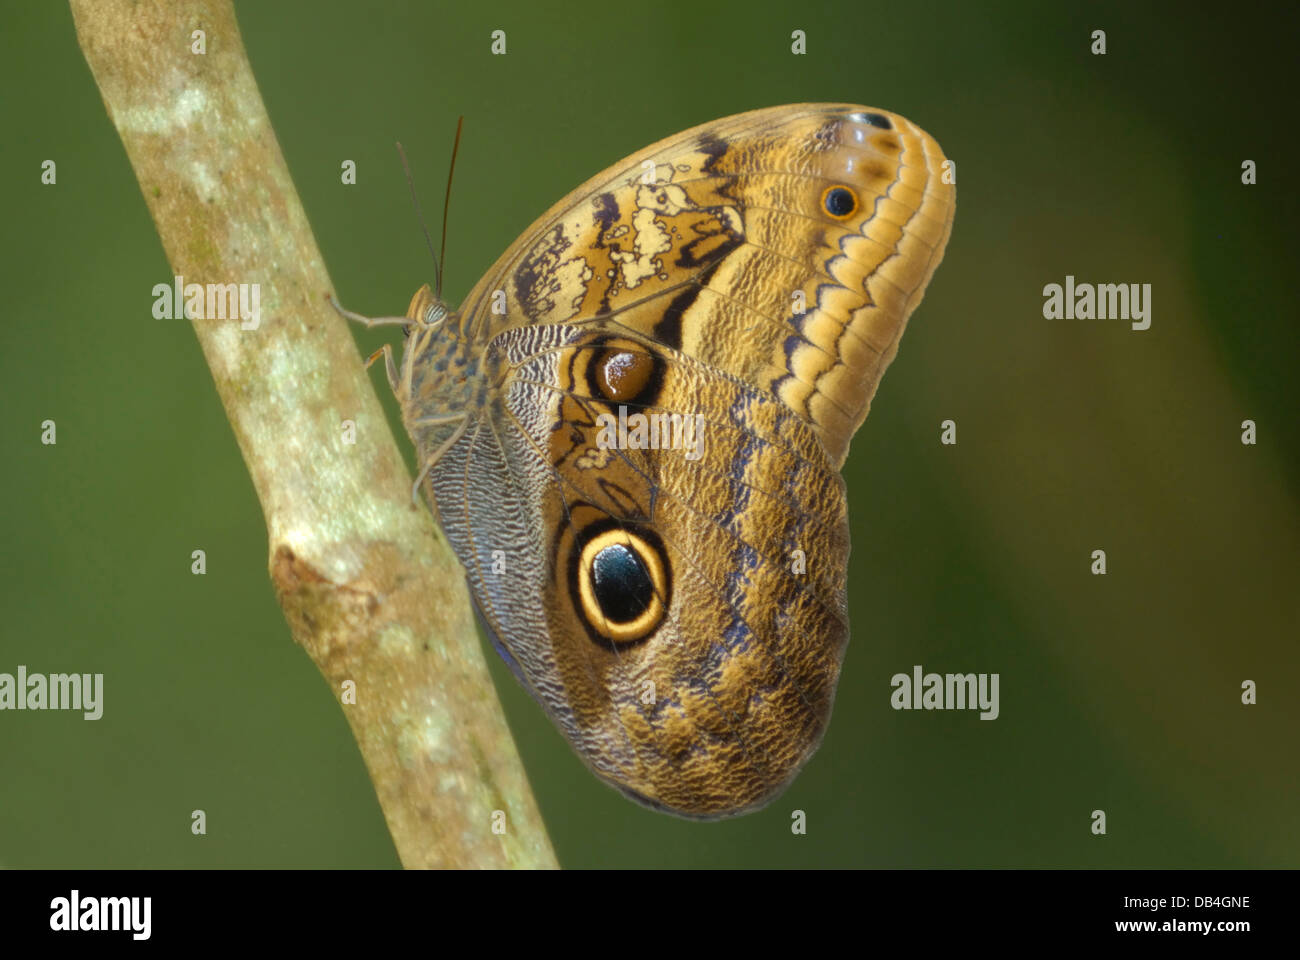 Dusky Giant Owl Butterfly (Caligo illionius) in Costa Rica rainforest - Stock Image